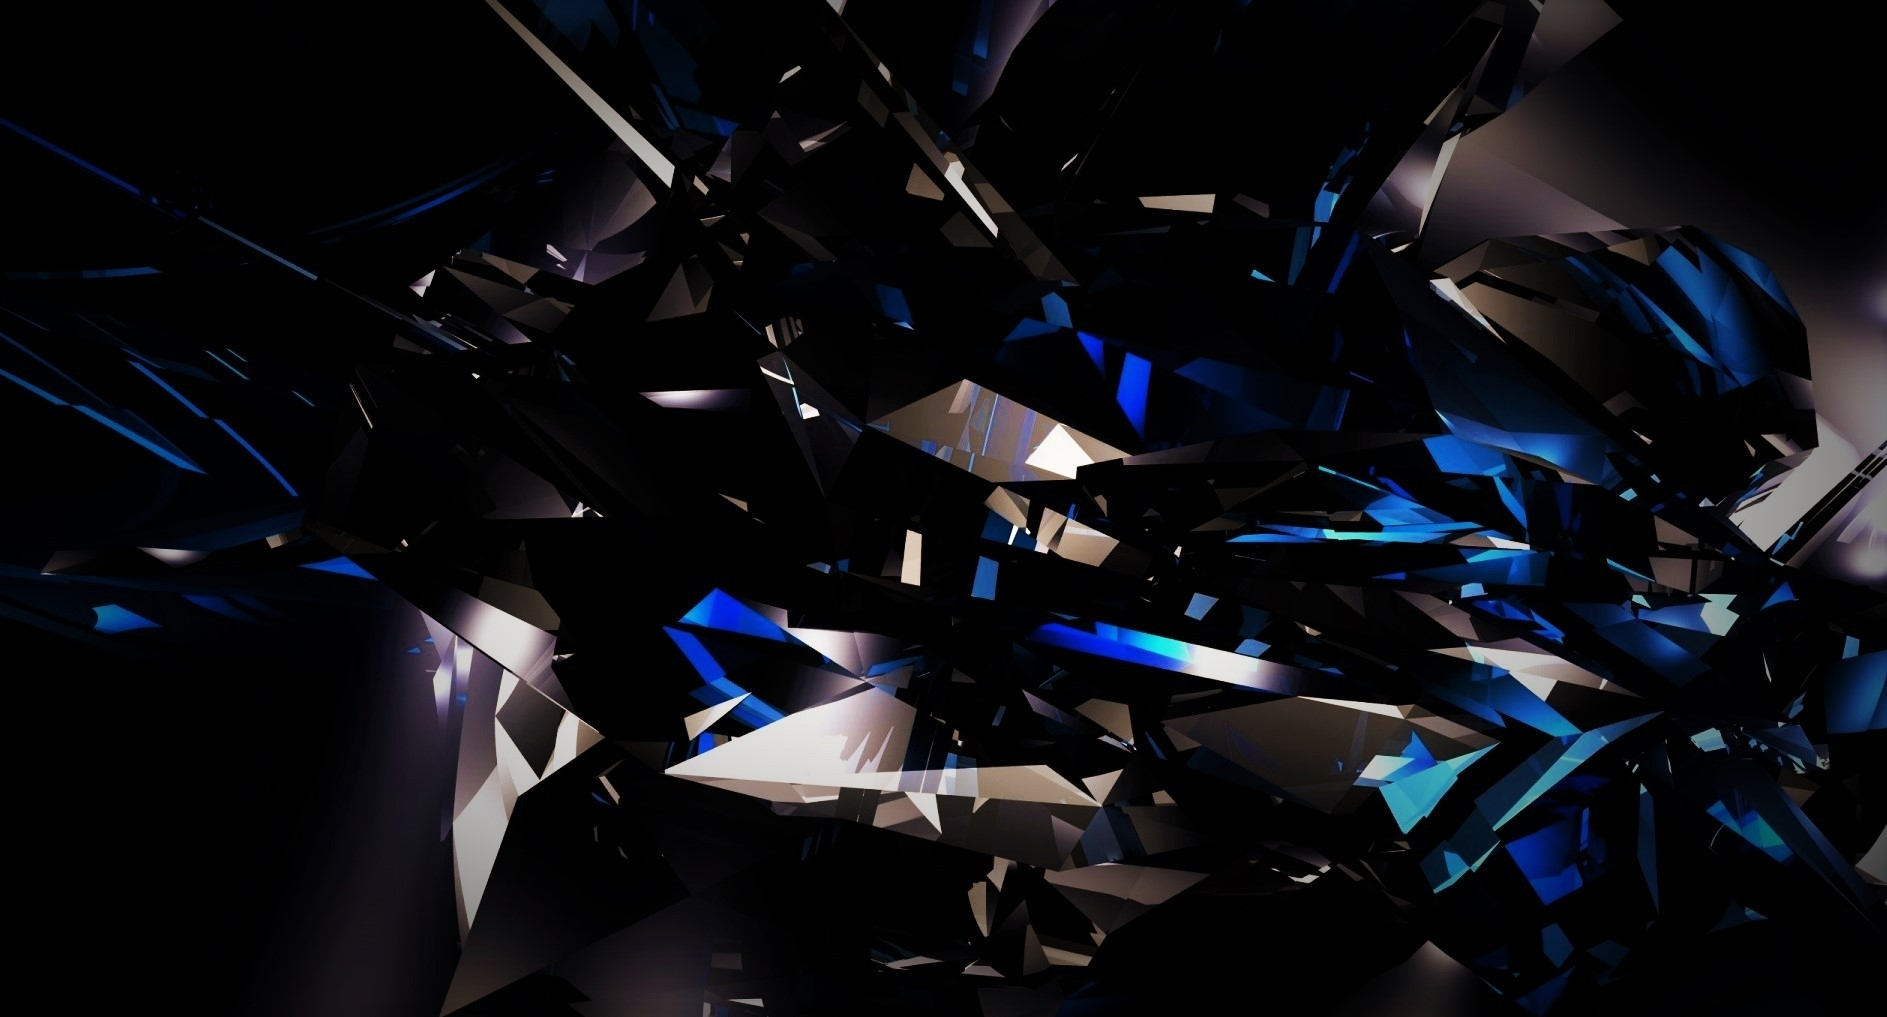 black, dark, abstract, 3d, shards, glass, blue, bright wallpapers hd